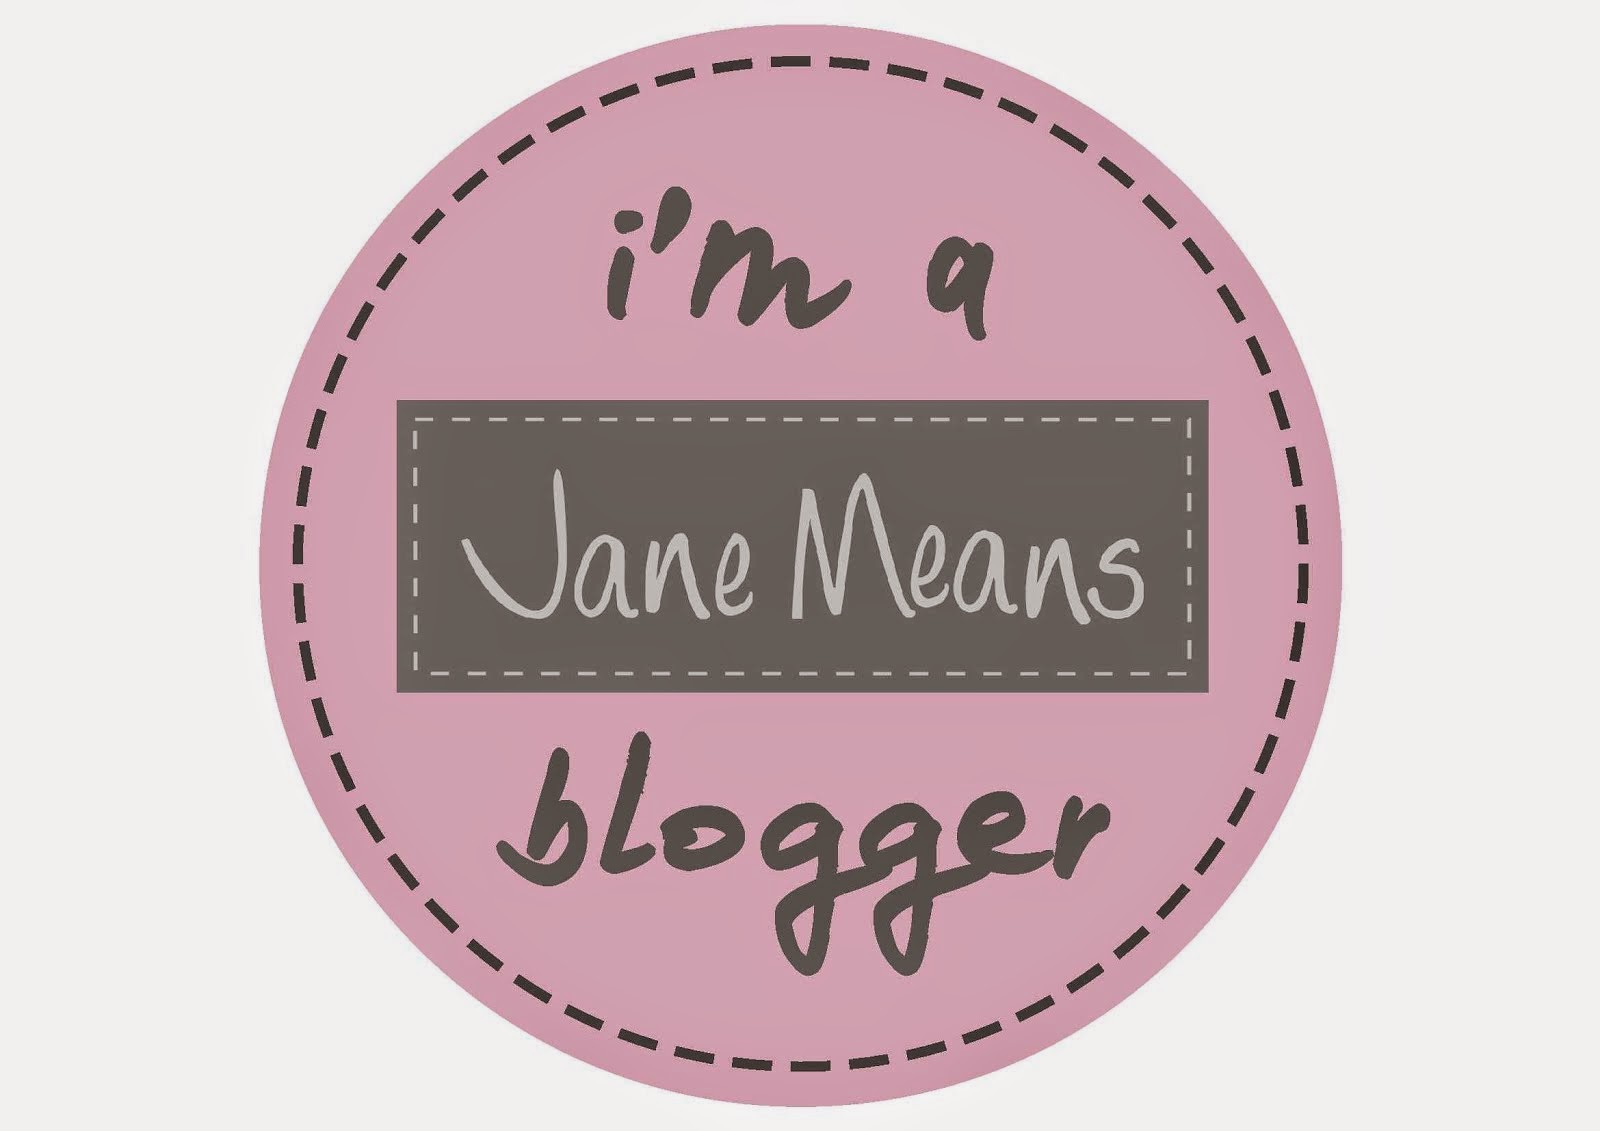 Of Spring and Summer is part of Jane Means' International Ribbon Blogging Team